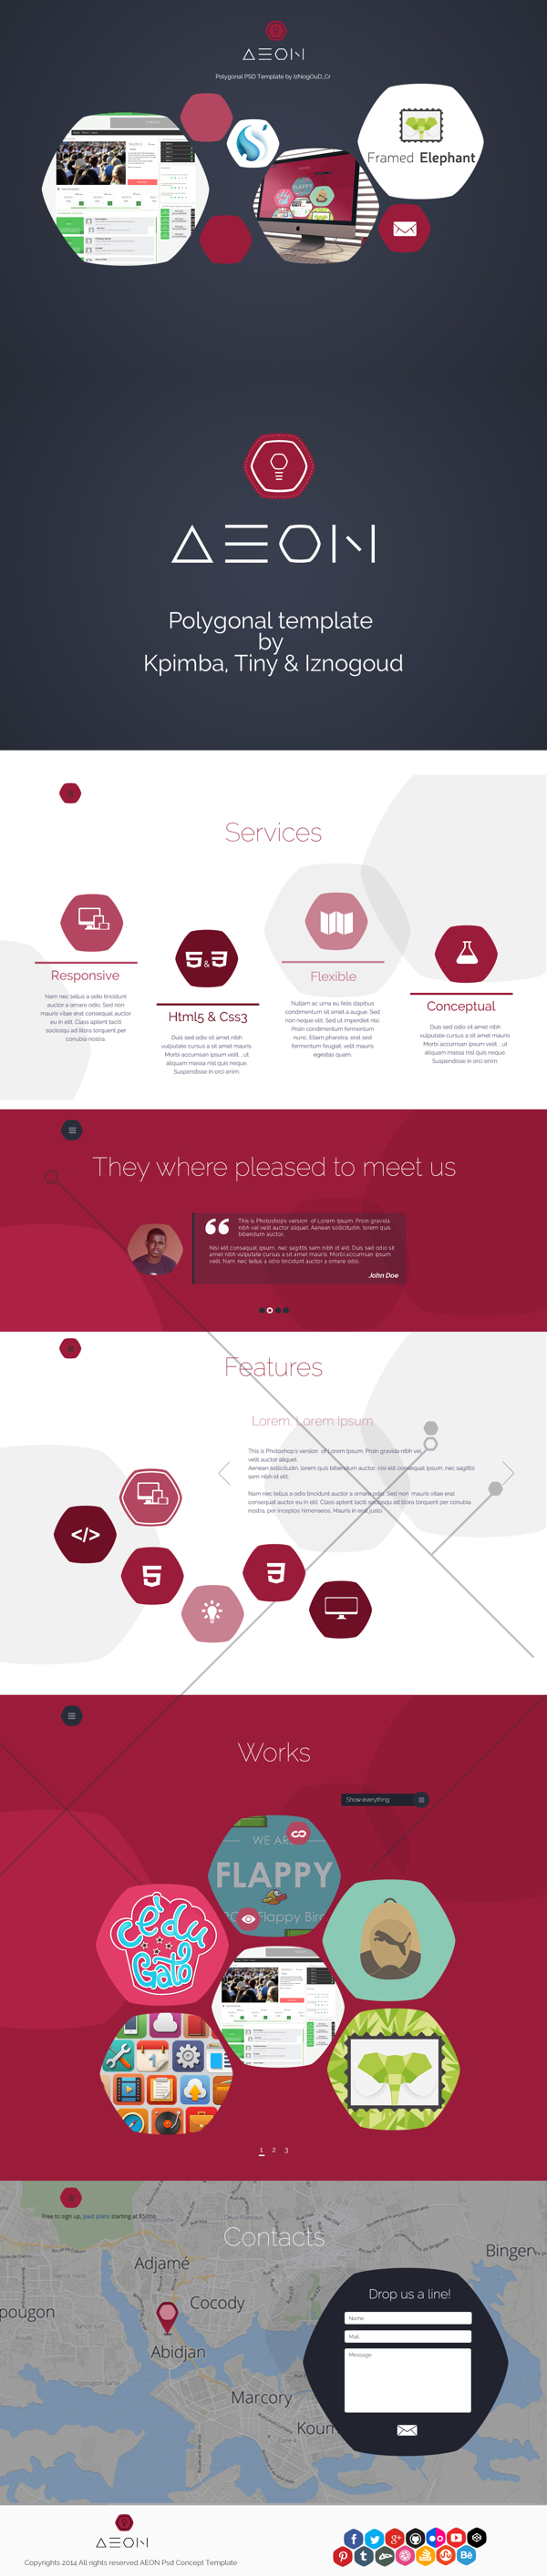 One Page parallax Polygonal Template Via @iznogoud_cr behance.net/iznogoud